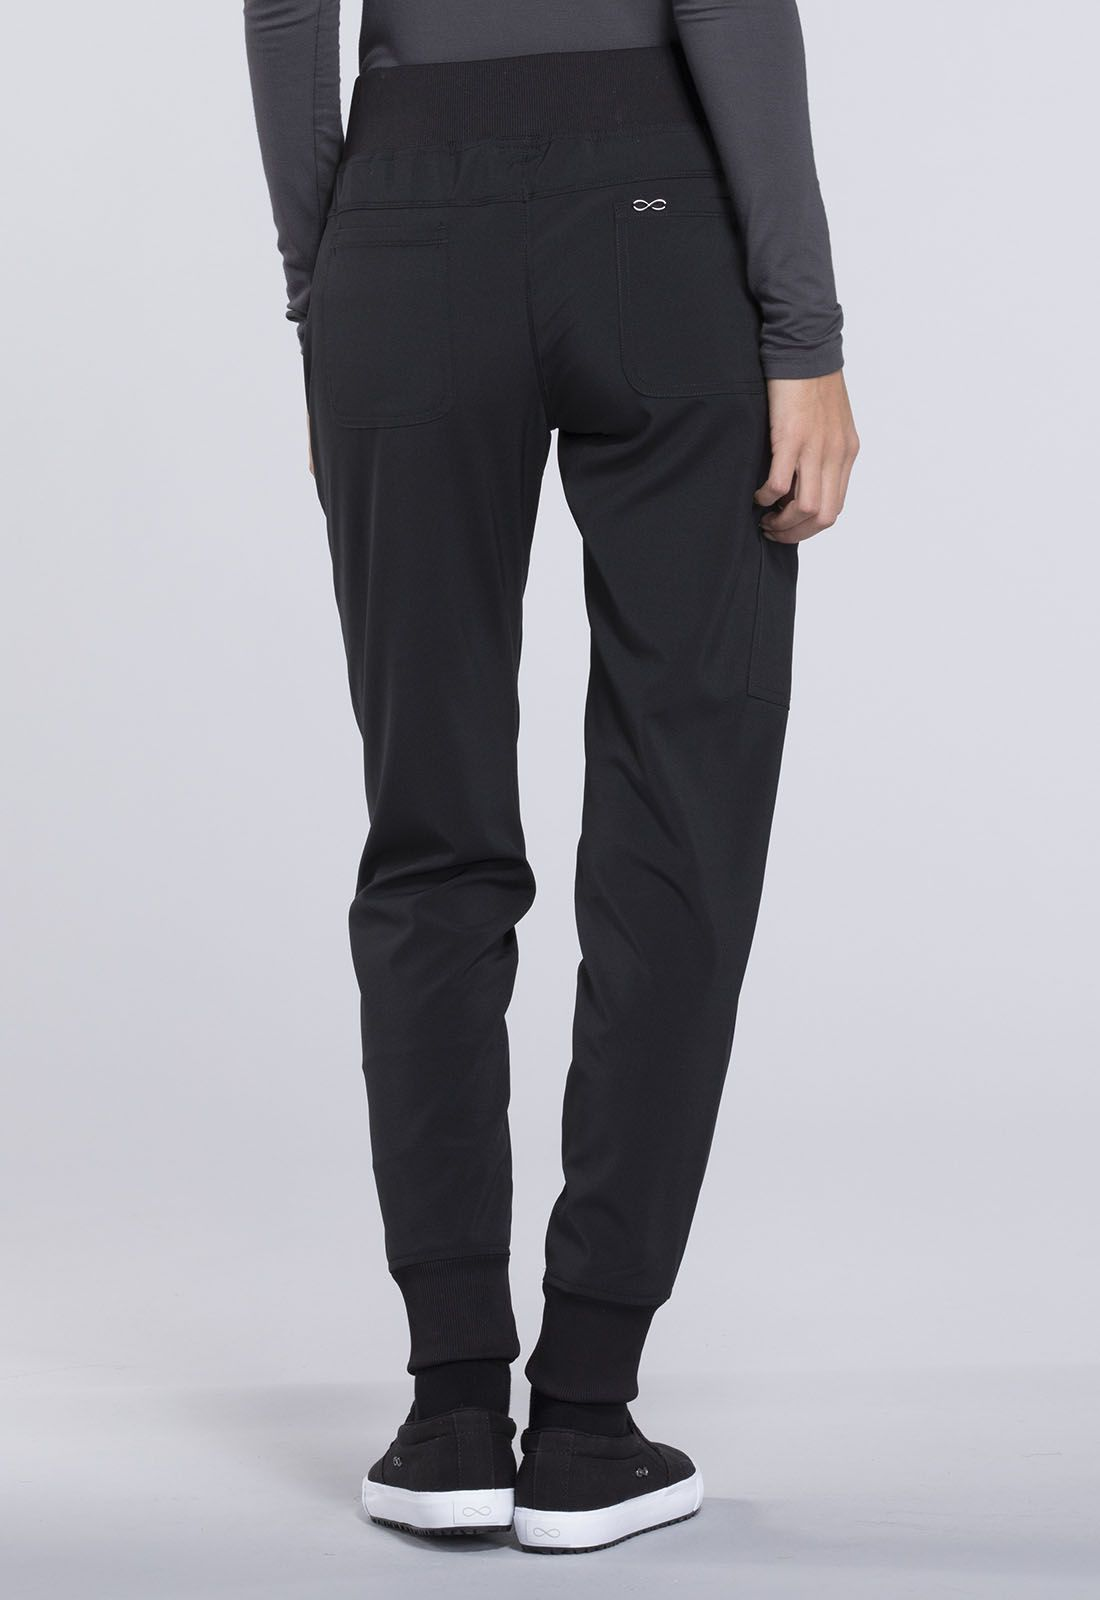 https://medcloth.by/images/stories/virtuemart/product/ck110-black-4.jpg